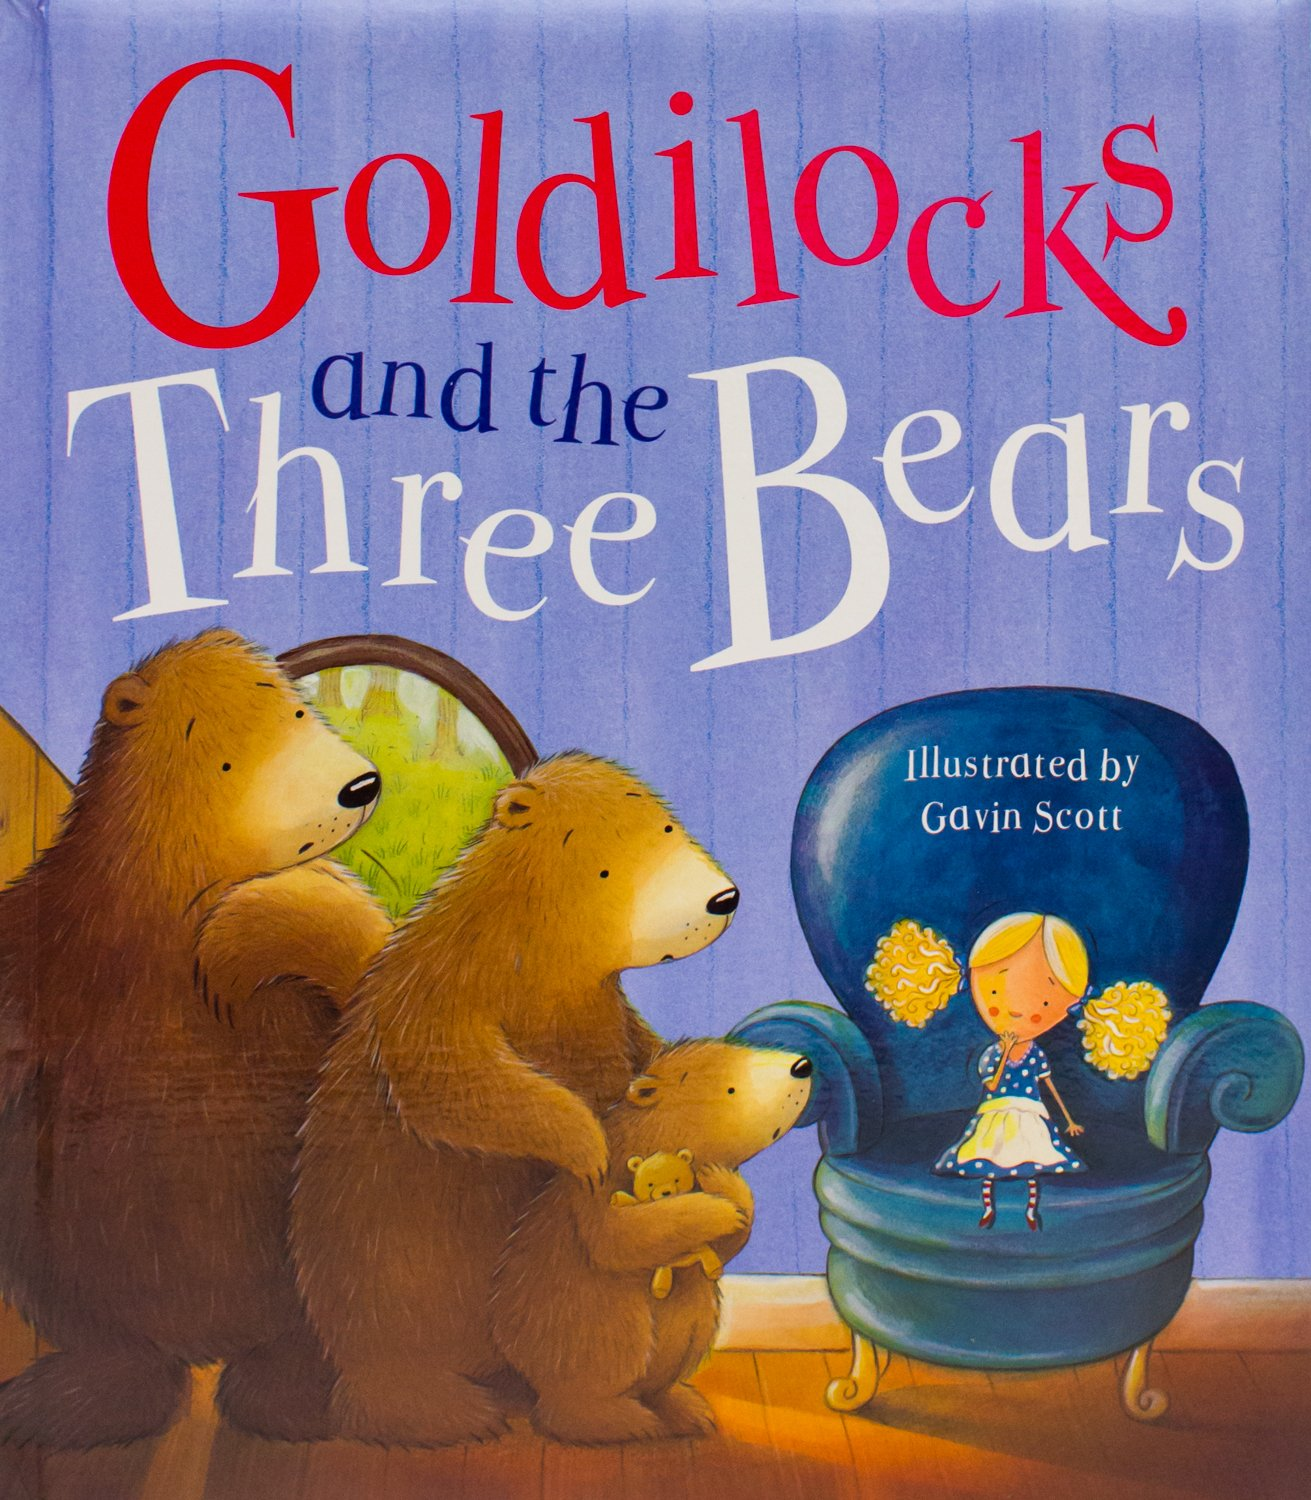 Uncategorized And The Three Bears goldilocks and the three bears parragon books 0824921044574 amazon com books